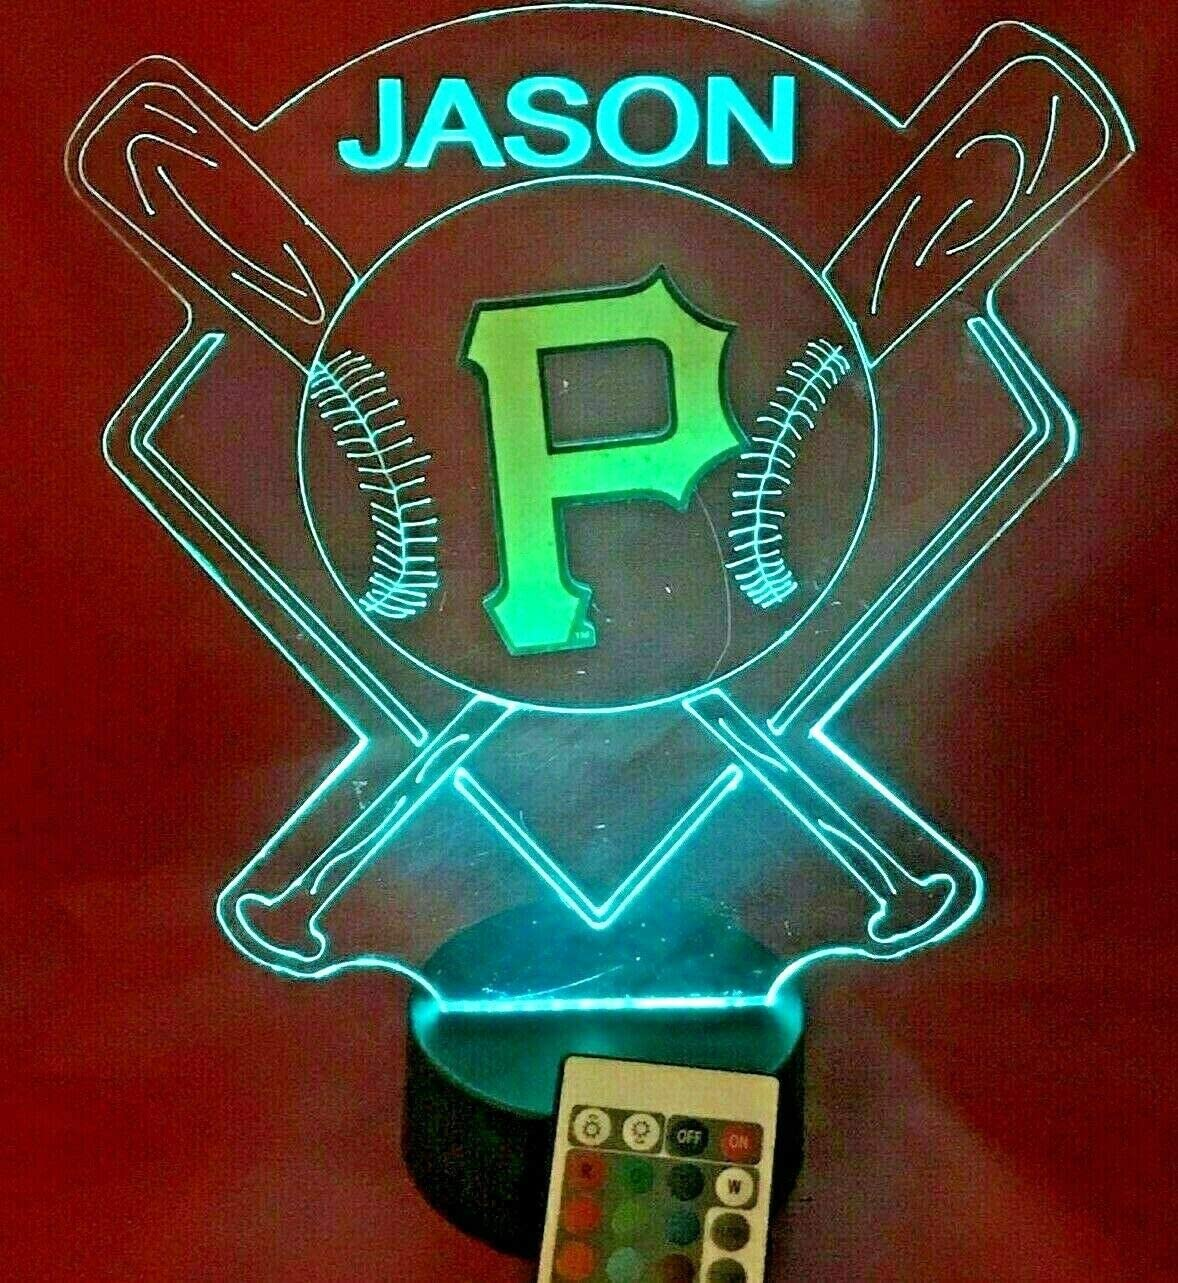 Baseball Night Light Up Lamp LED Lamp Personalized Handmade Stadium with Bats Free Personalization and Remote, Men Man Boys Girls Sports Gift, 16 Color Options, and Variations! (Balt Pirates)